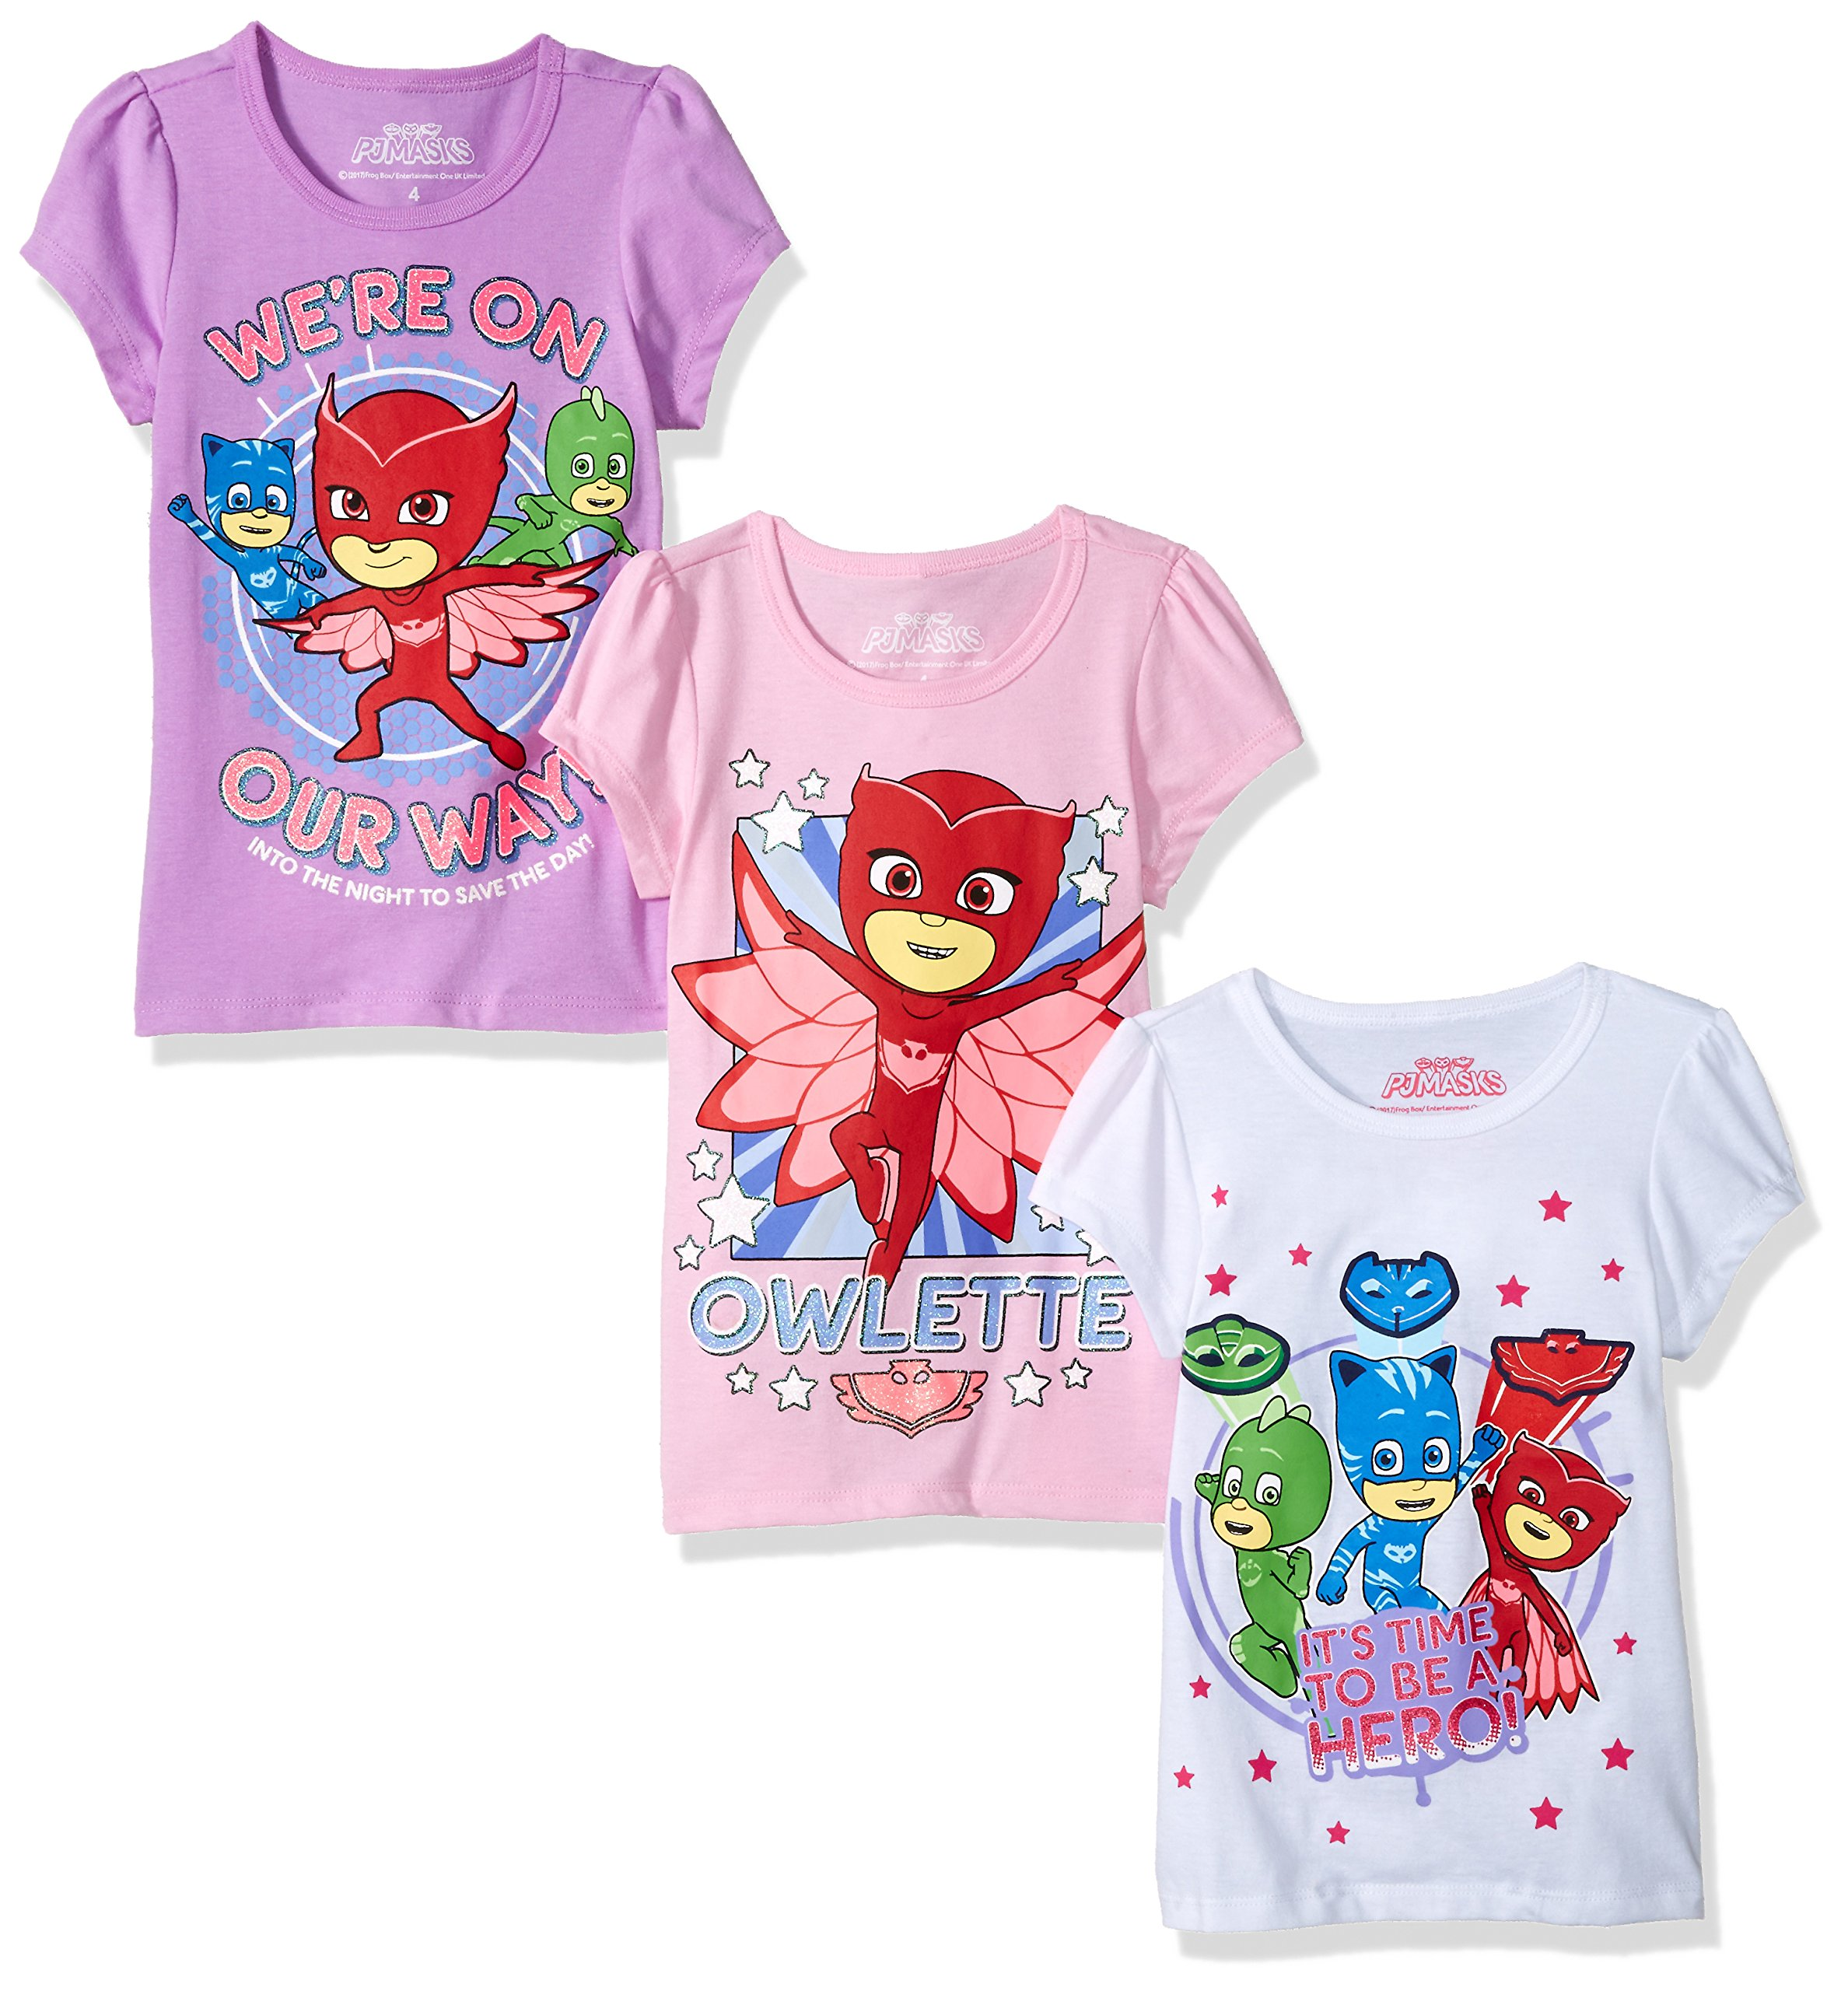 8f263cd4 Amazon.com: PJ Masks: Girls Apparel